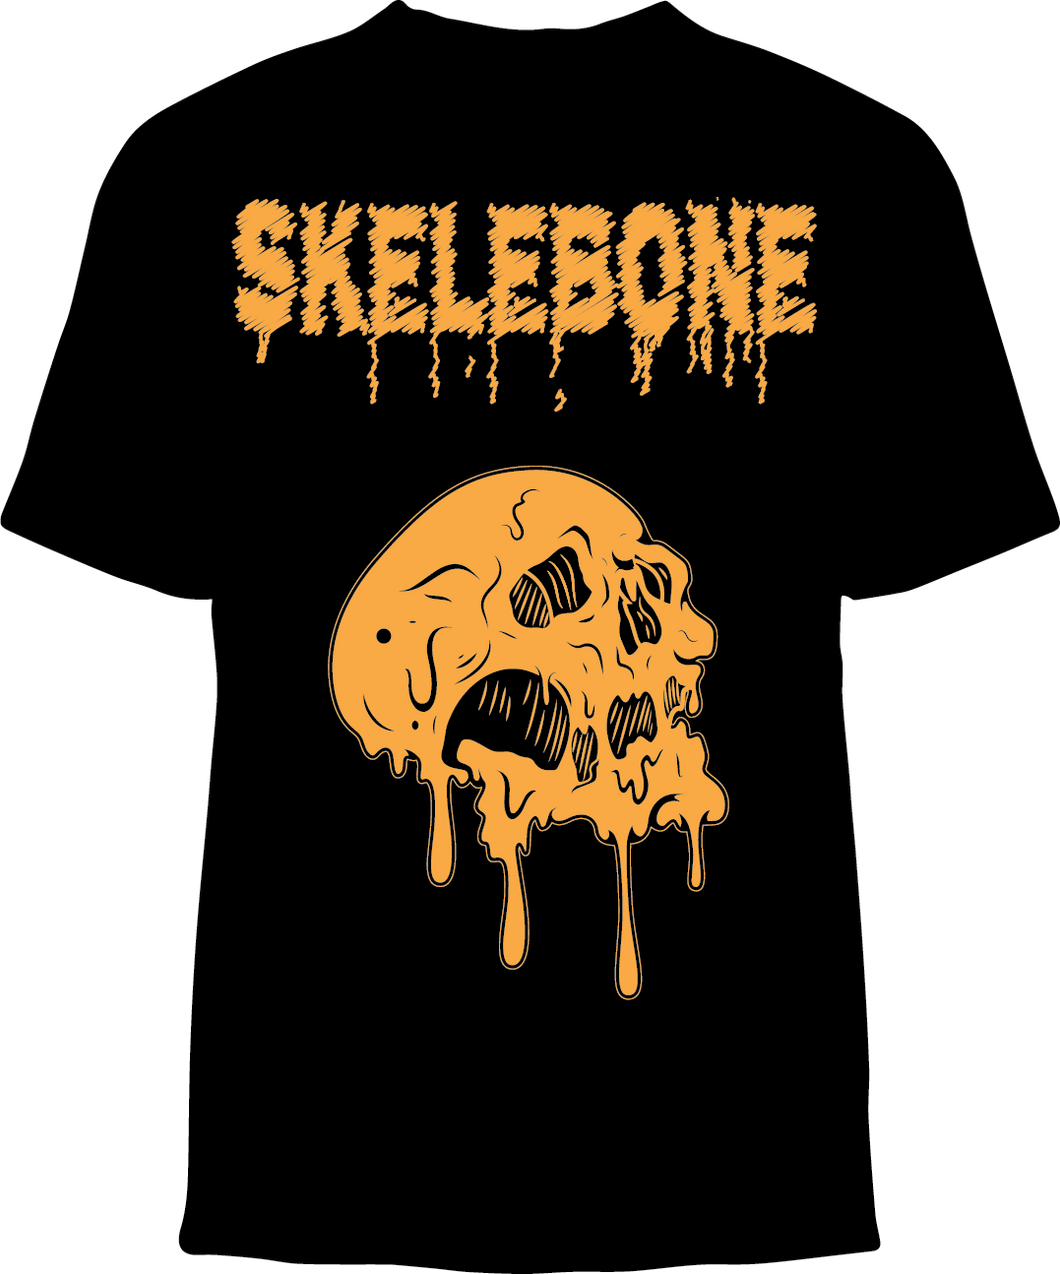 Skelebone Short Sleeve T-shirt, Melting skull